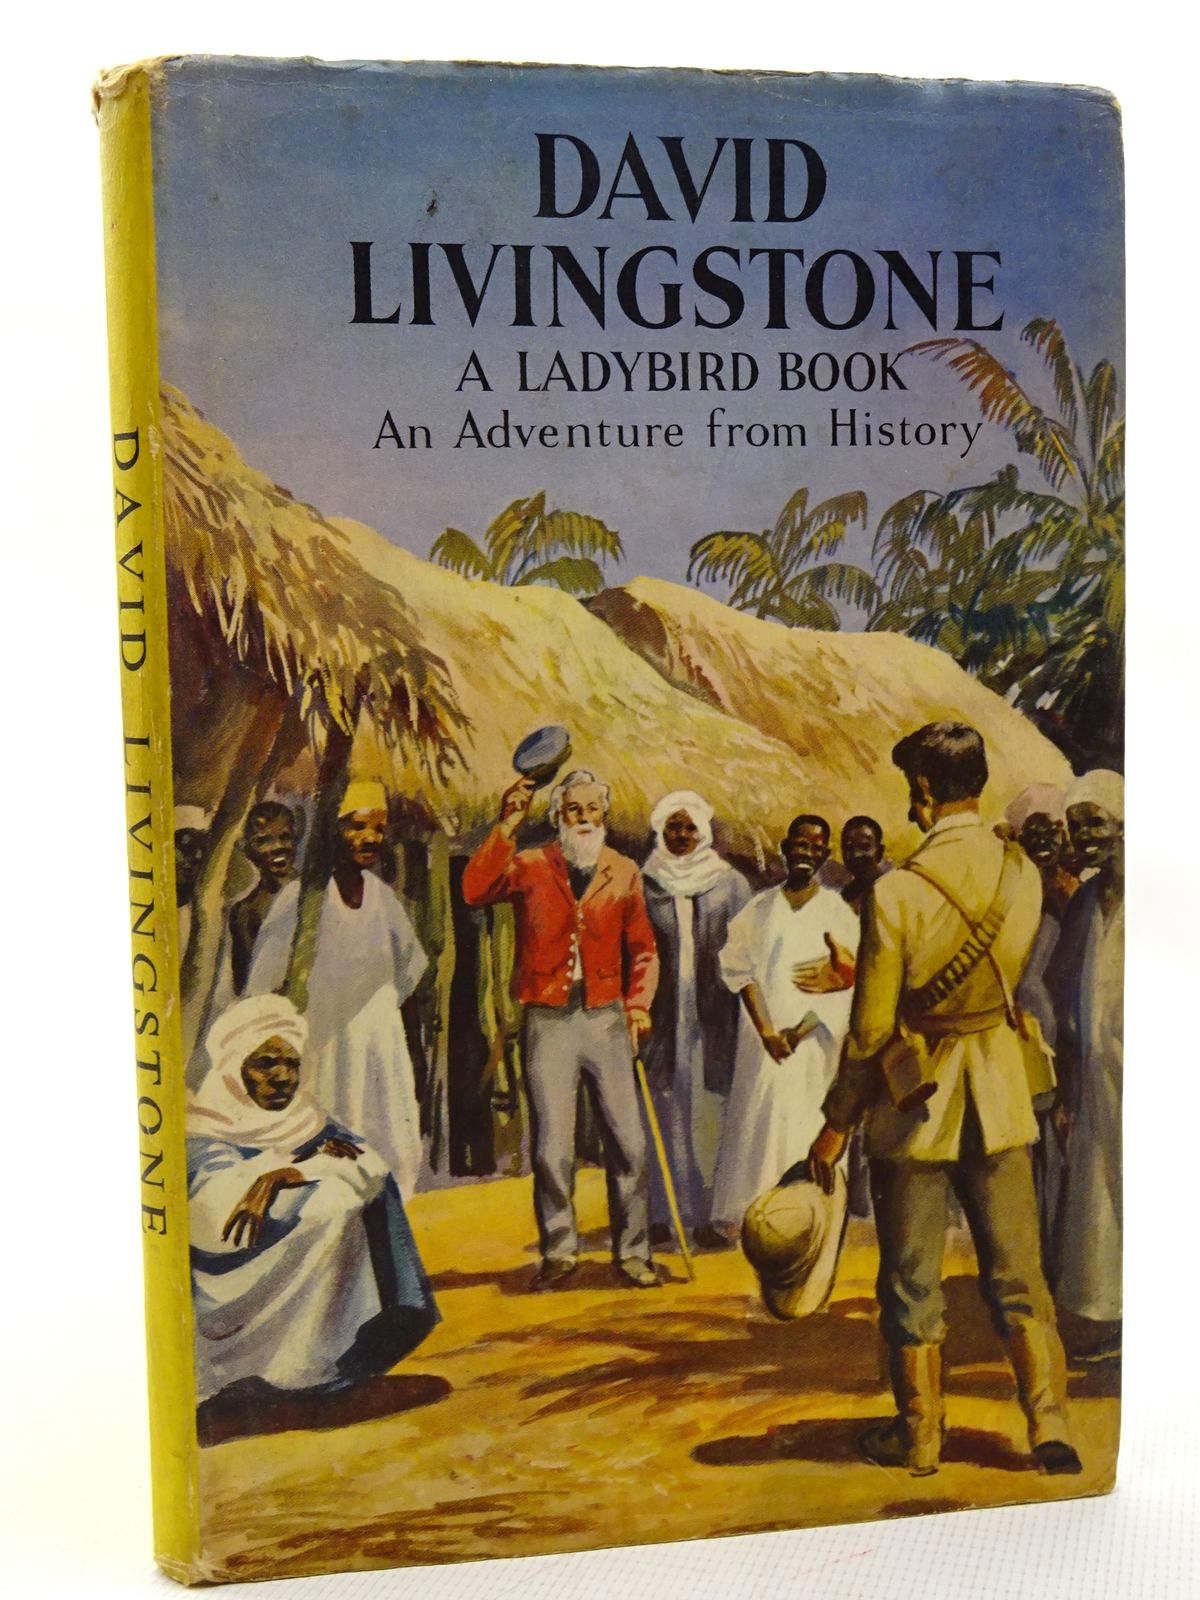 Photo of DAVID LIVINGSTONE written by Peach, L. Du Garde illustrated by Kenney, John published by Wills & Hepworth Ltd. (STOCK CODE: 2124648)  for sale by Stella & Rose's Books